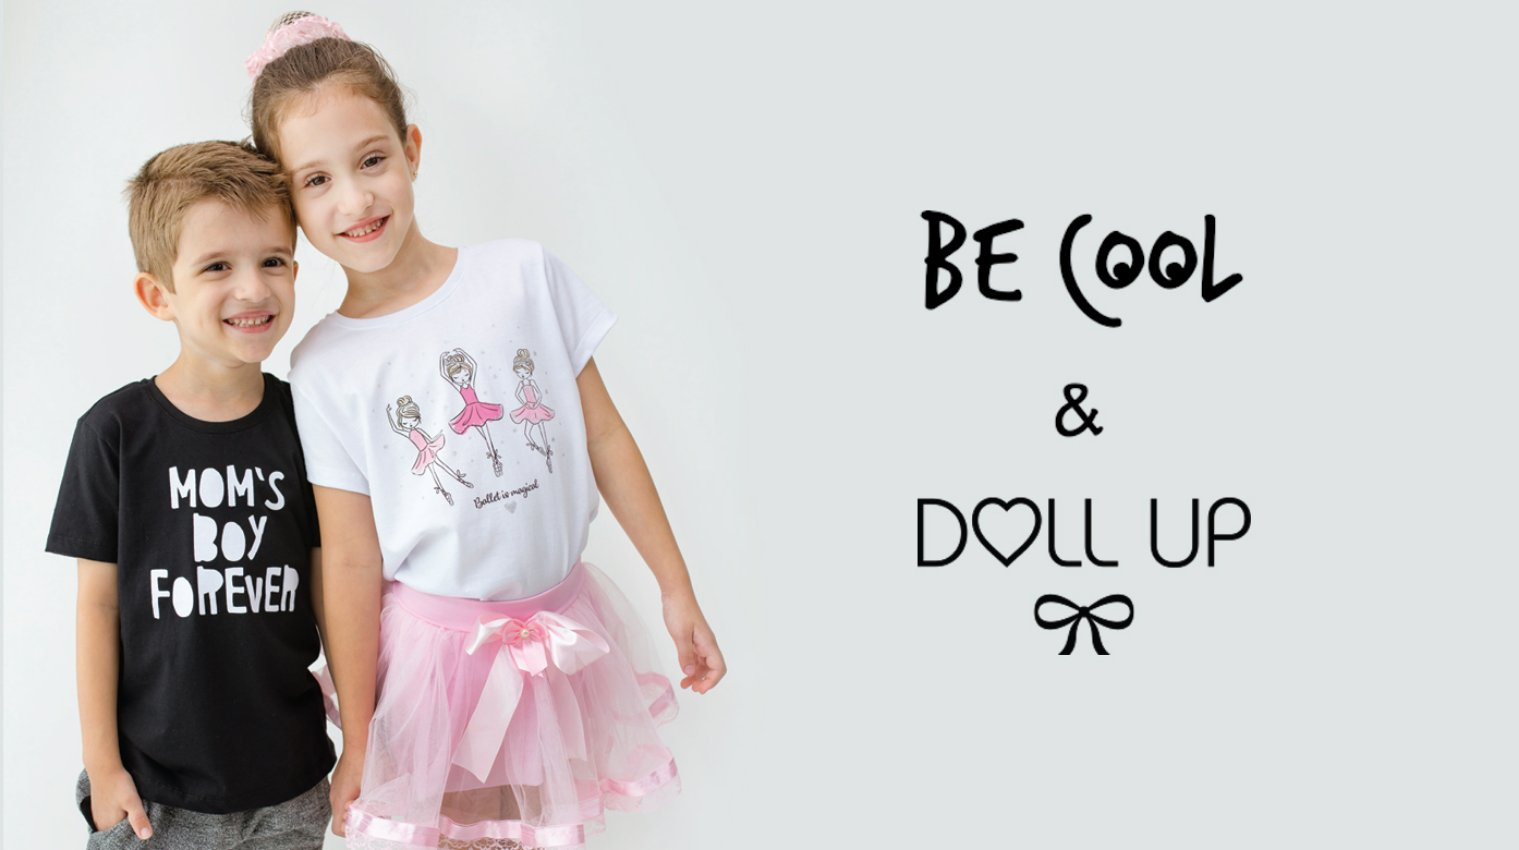 Doll up e Be cool